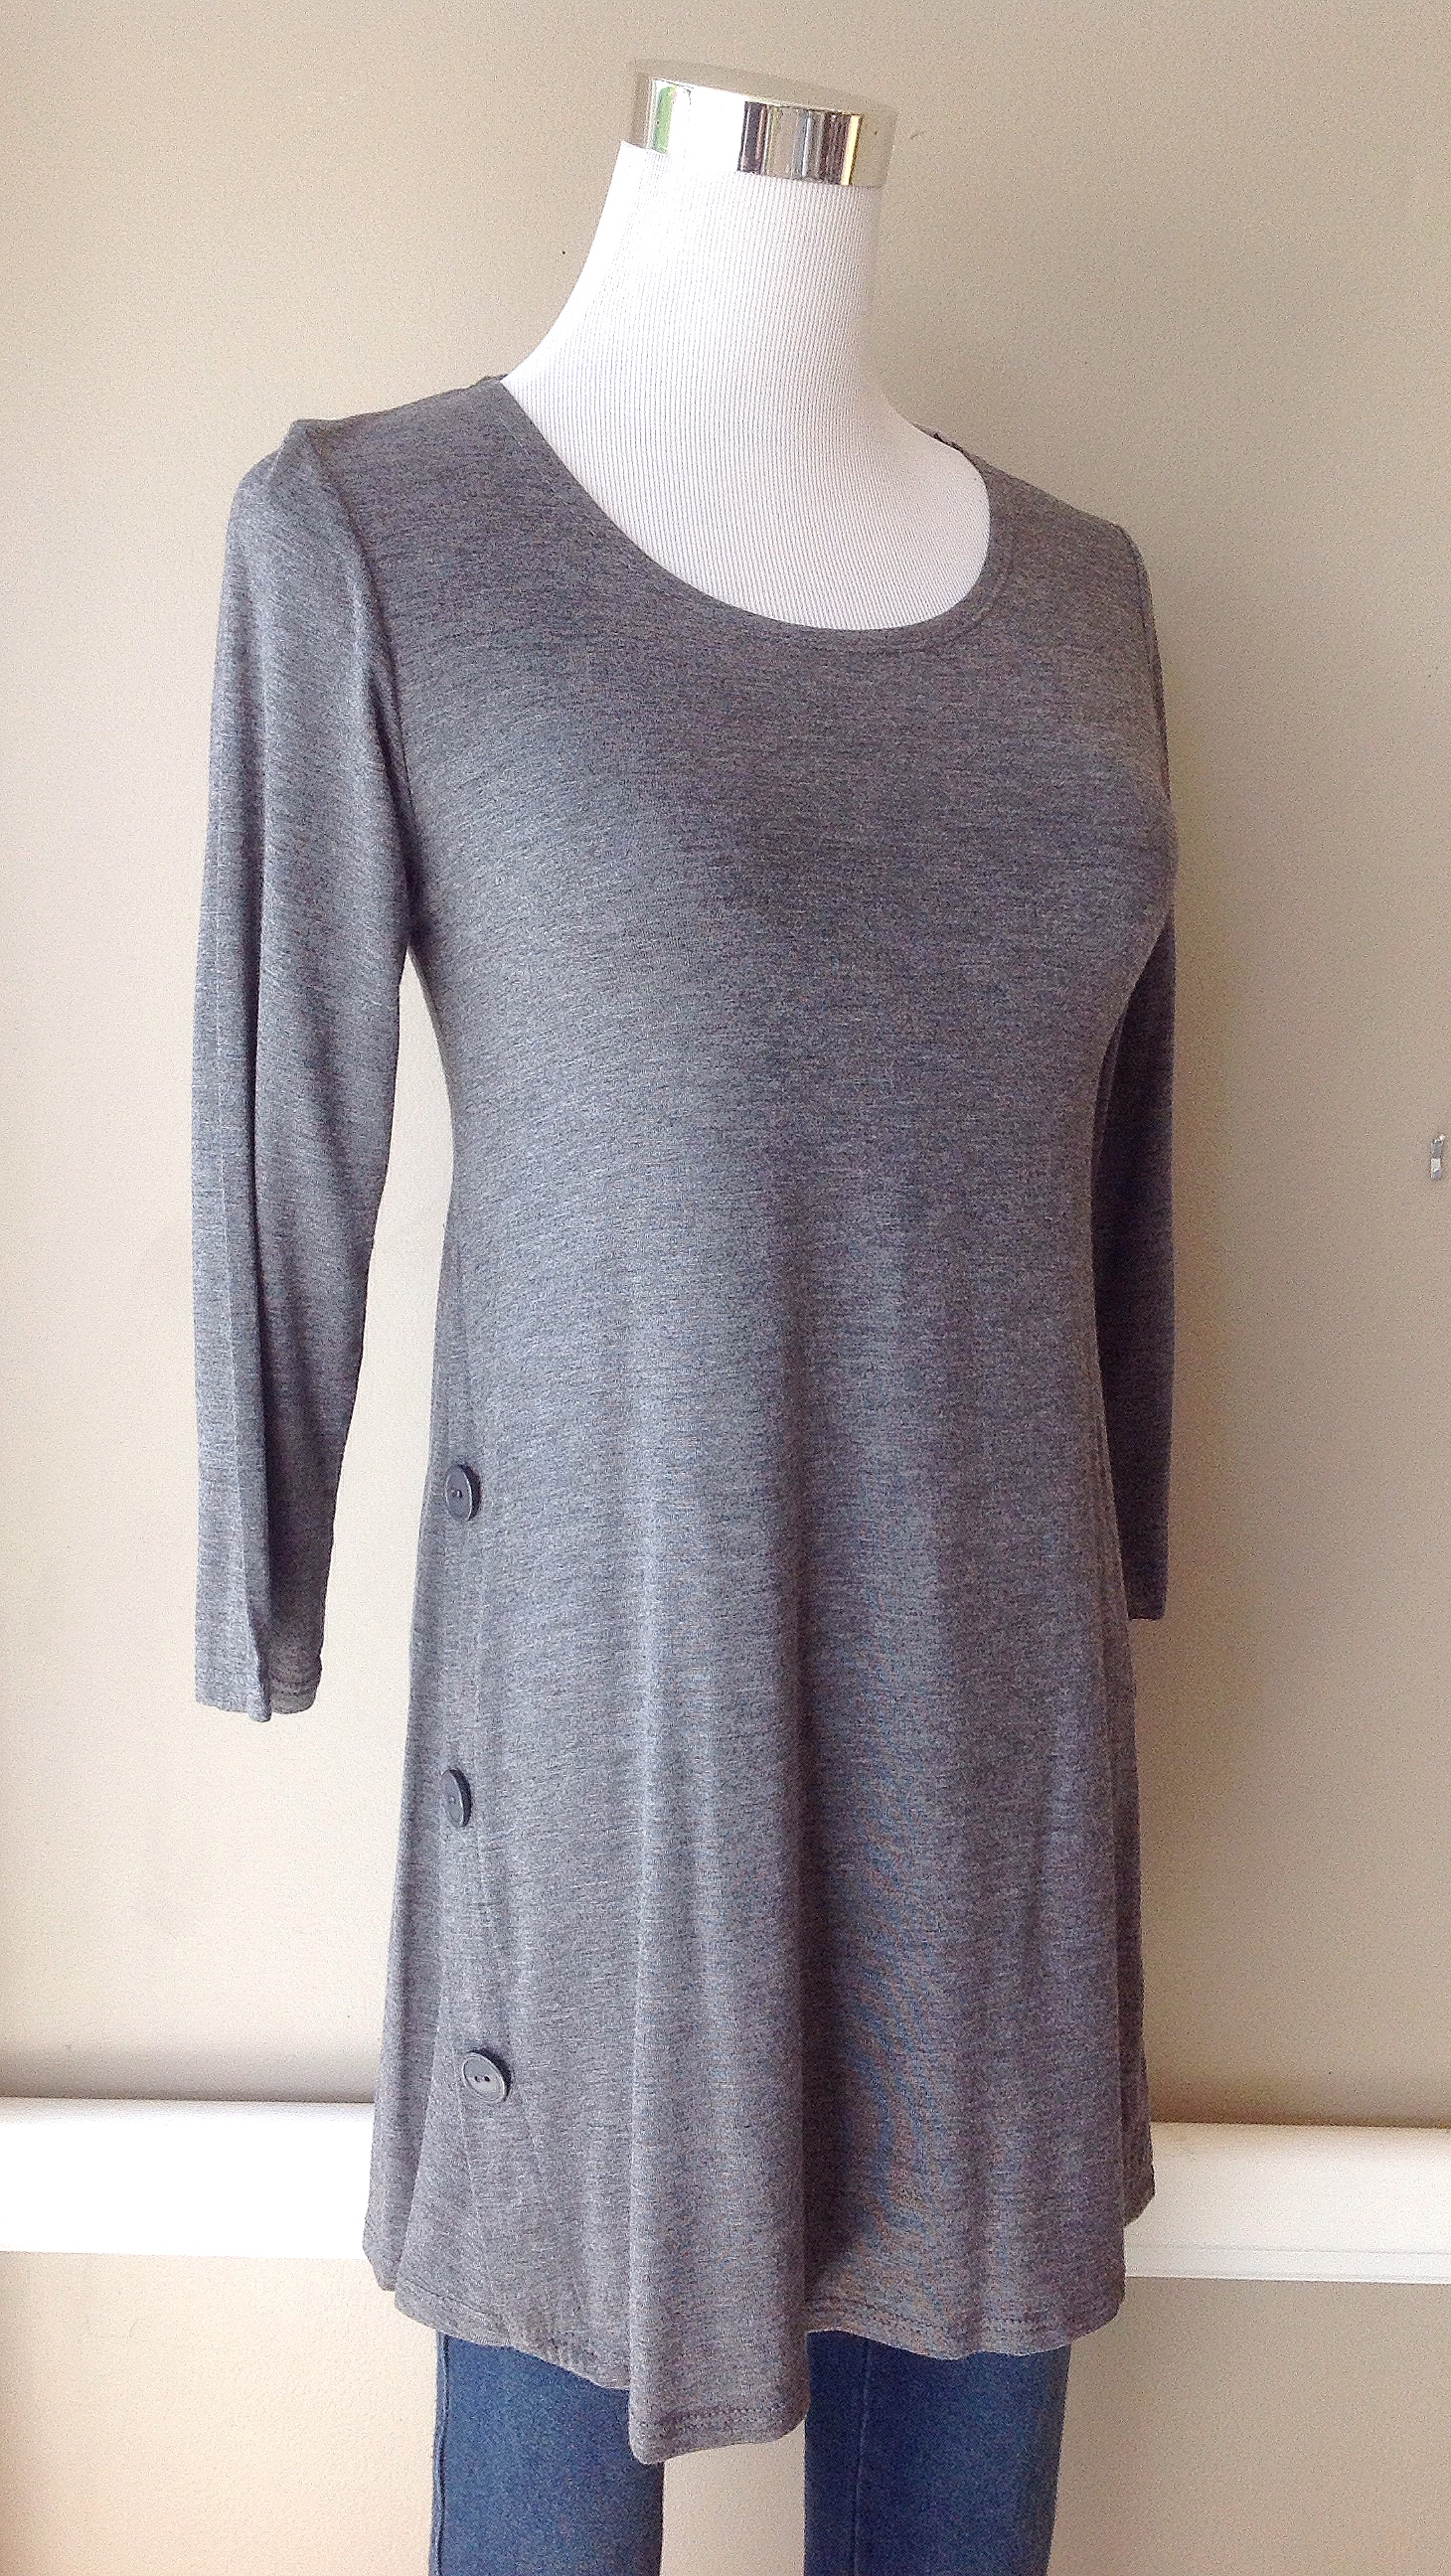 Heather grey tunic top with side button detail and 3/4 sleeves, $34